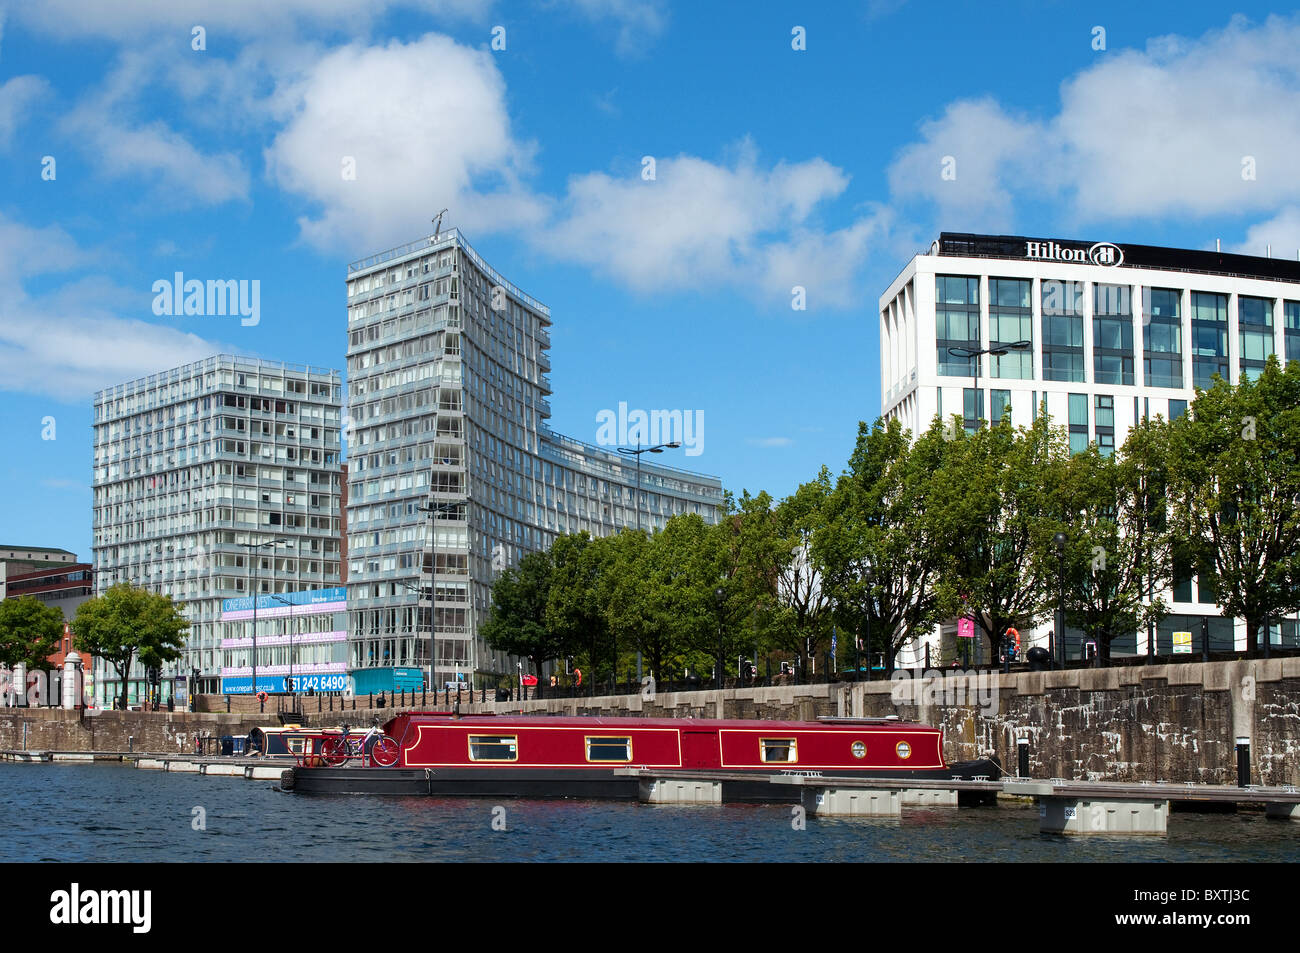 Hotels and apartments on the waterfront in Liverpool, UK - Stock Image